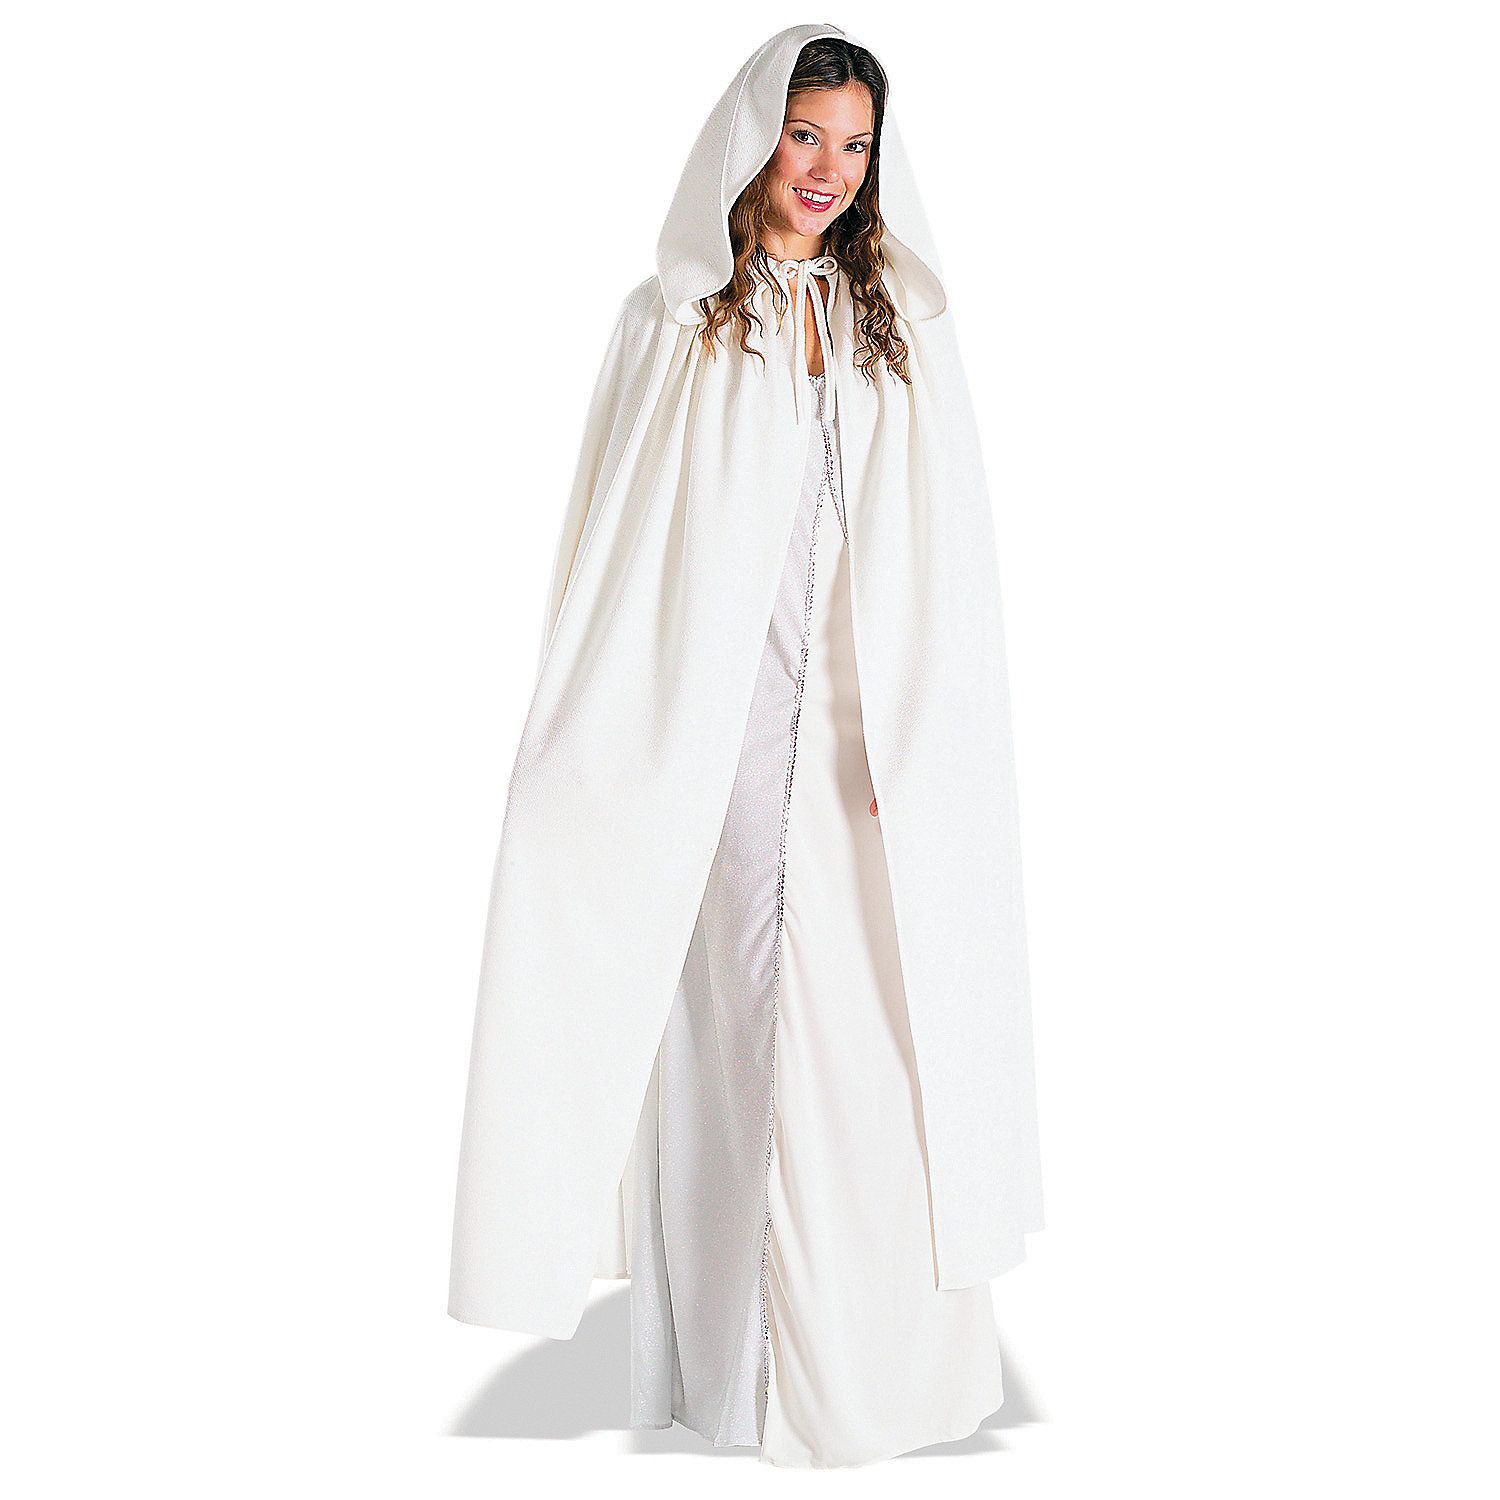 Cloak with Large Hood Halloween Cloak Princess Ghost Renaissance Costume Cape